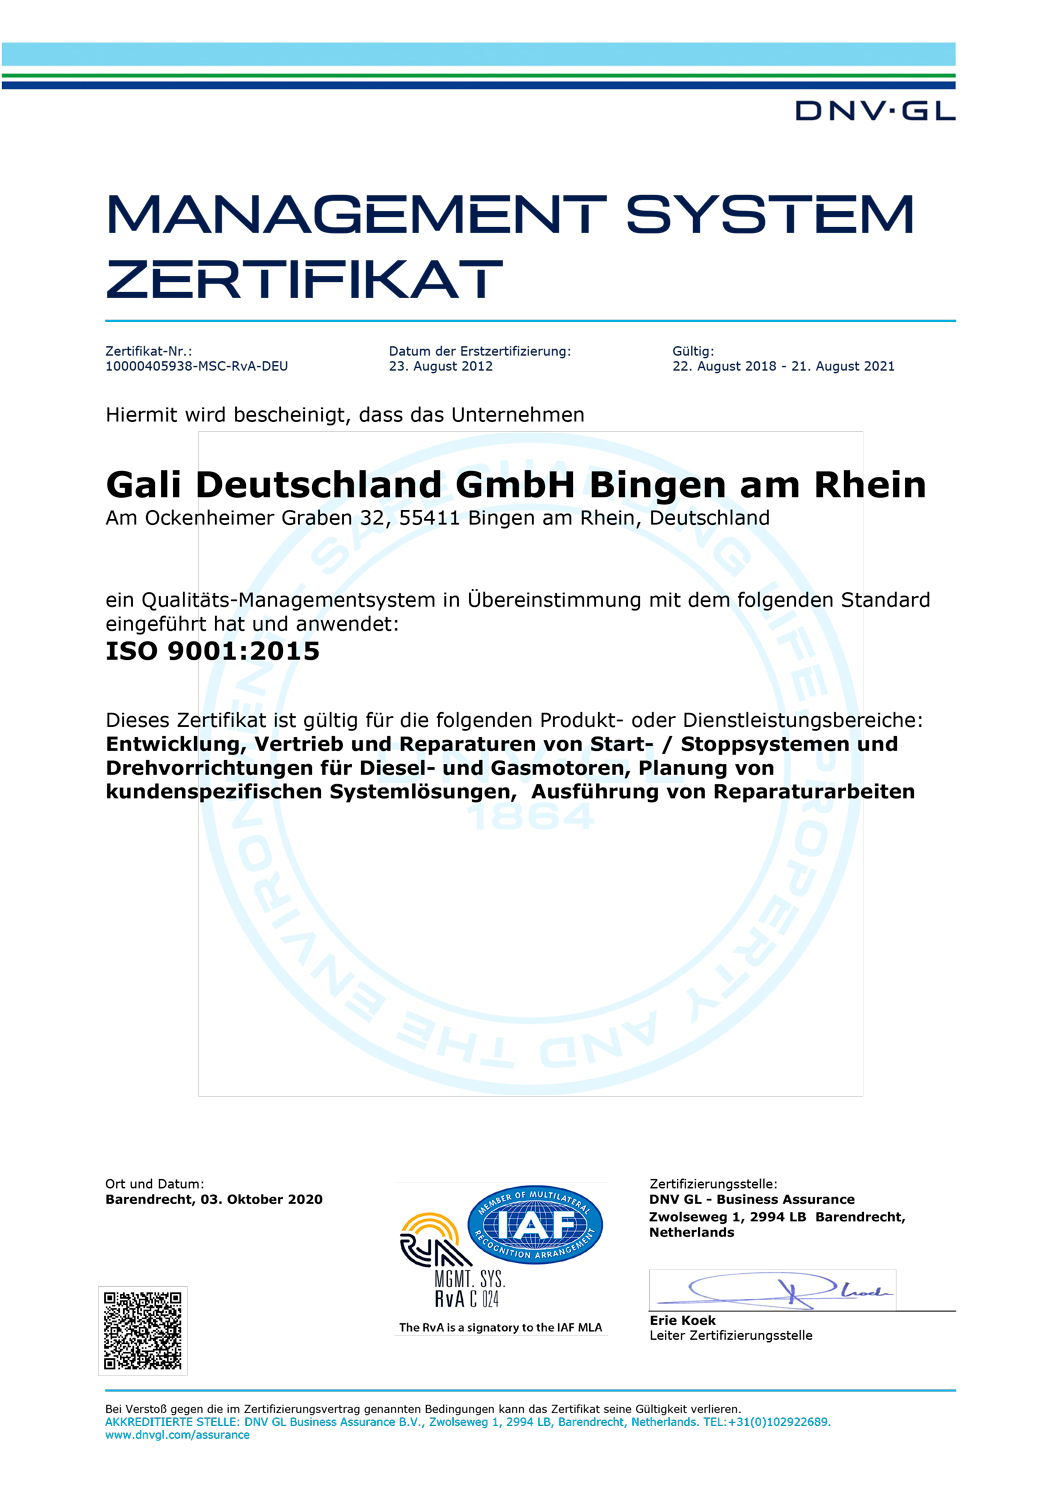 ISO 9001 rev0 10000405938-MSC-RvA-DEU German